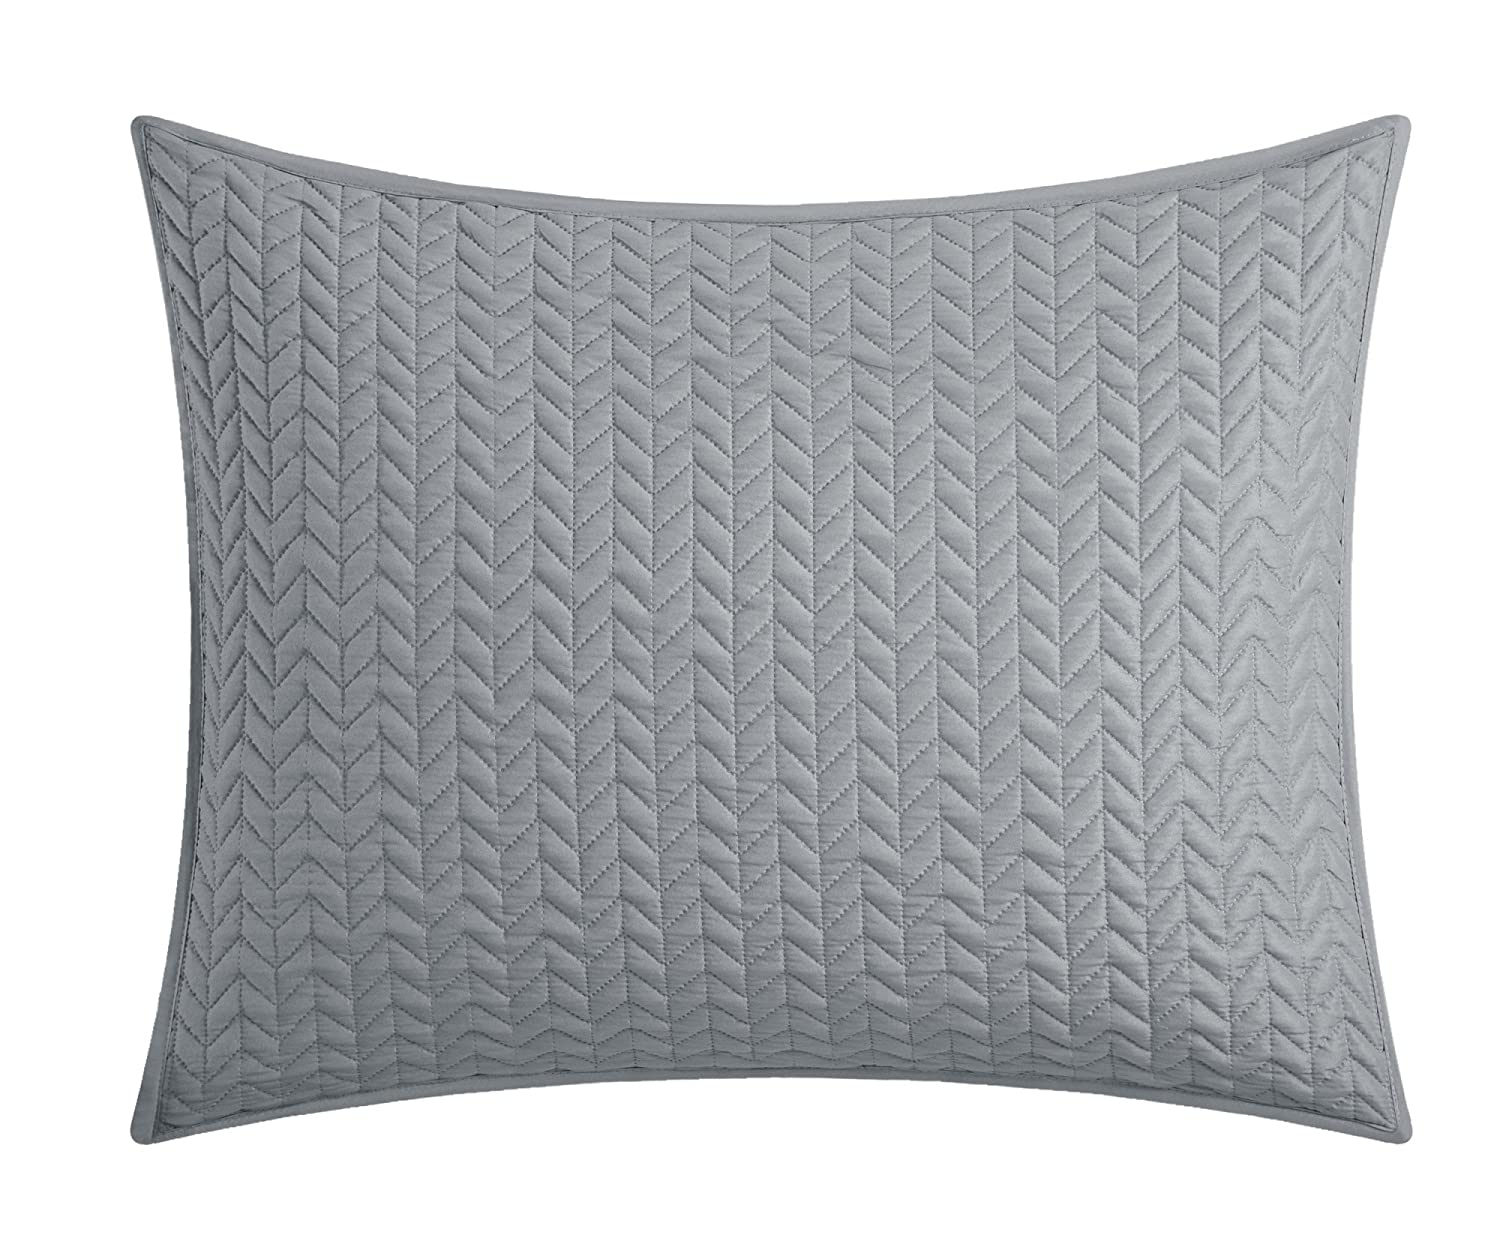 Gold BQS00316-AN Chic Home Weaverland 3 Piece Cover Set Geometric Chevron Quilted Bedding-Decorative Pillow Shams Included King